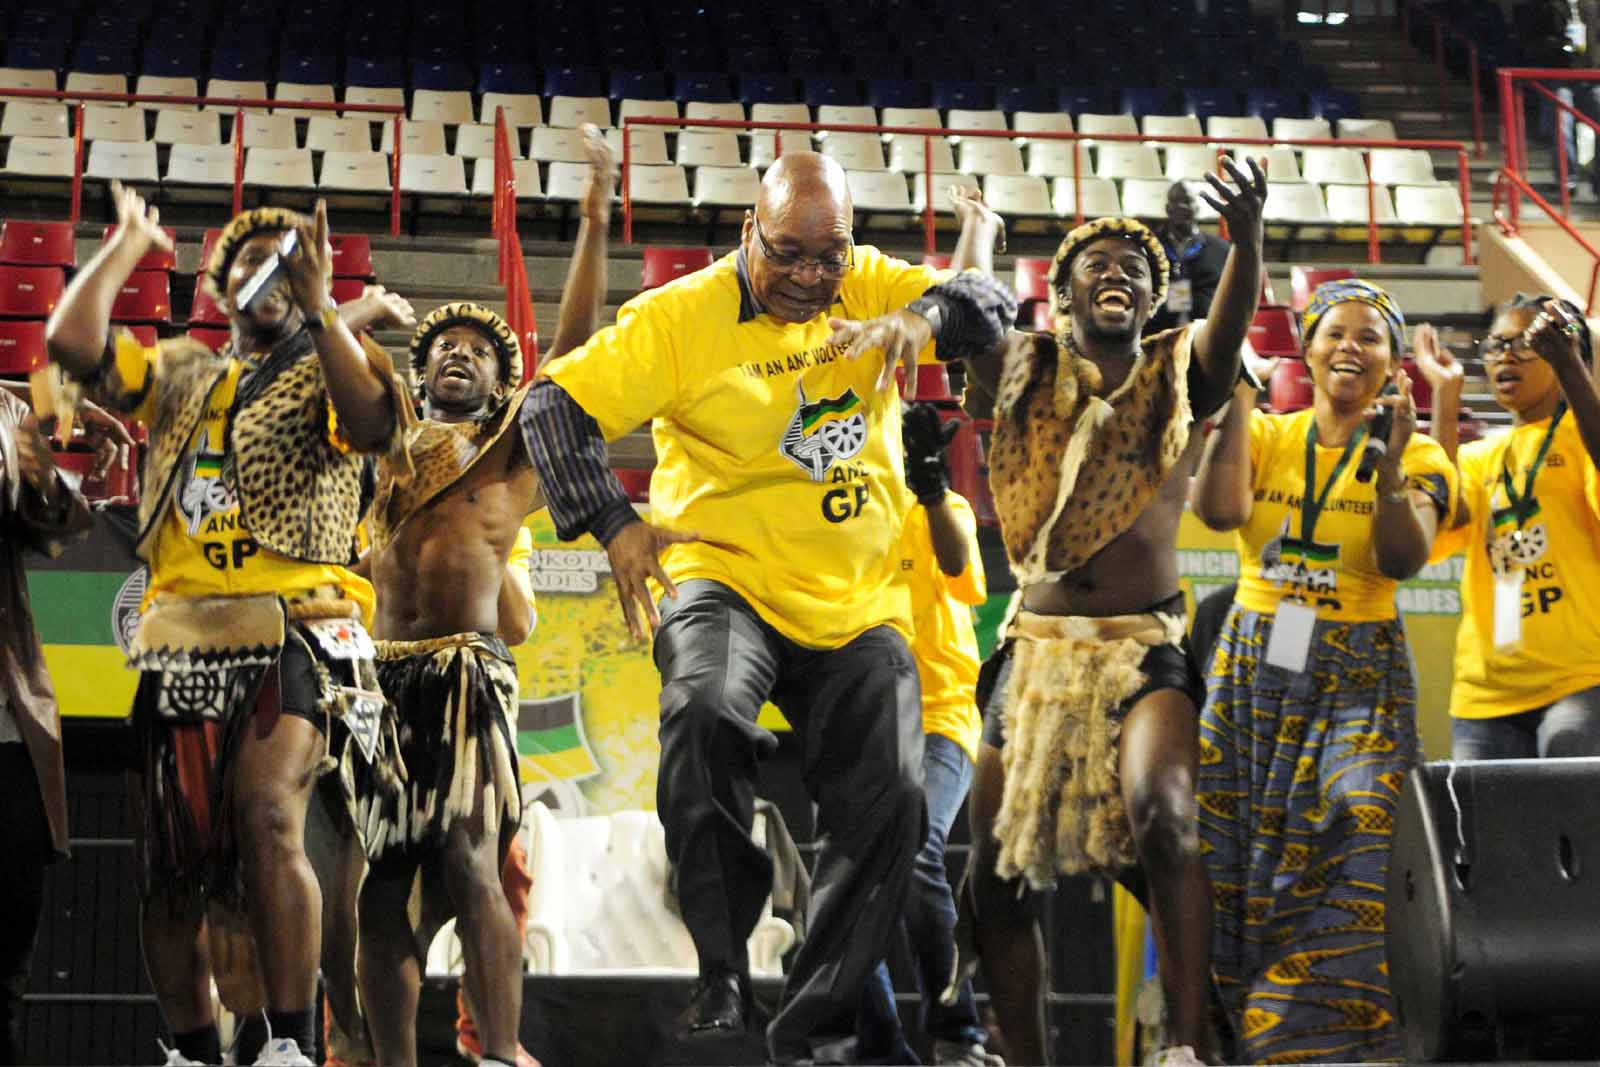 President Jacob Zuma at a campaign rally (Photo Credit: Citizen.co.za)